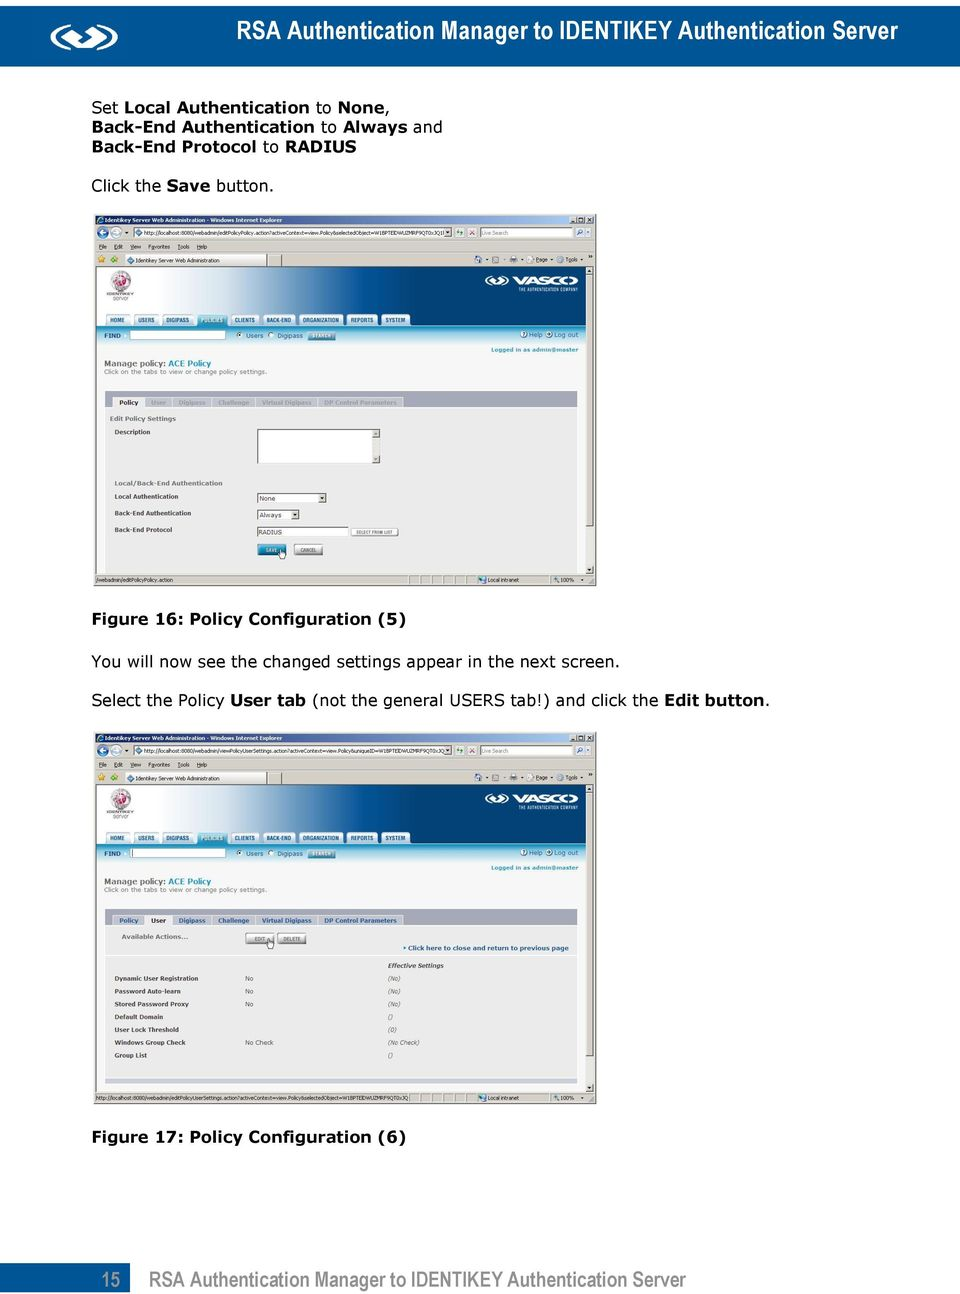 Figure 16: Policy Configuration (5) You will now see the changed settings appear in the next screen.